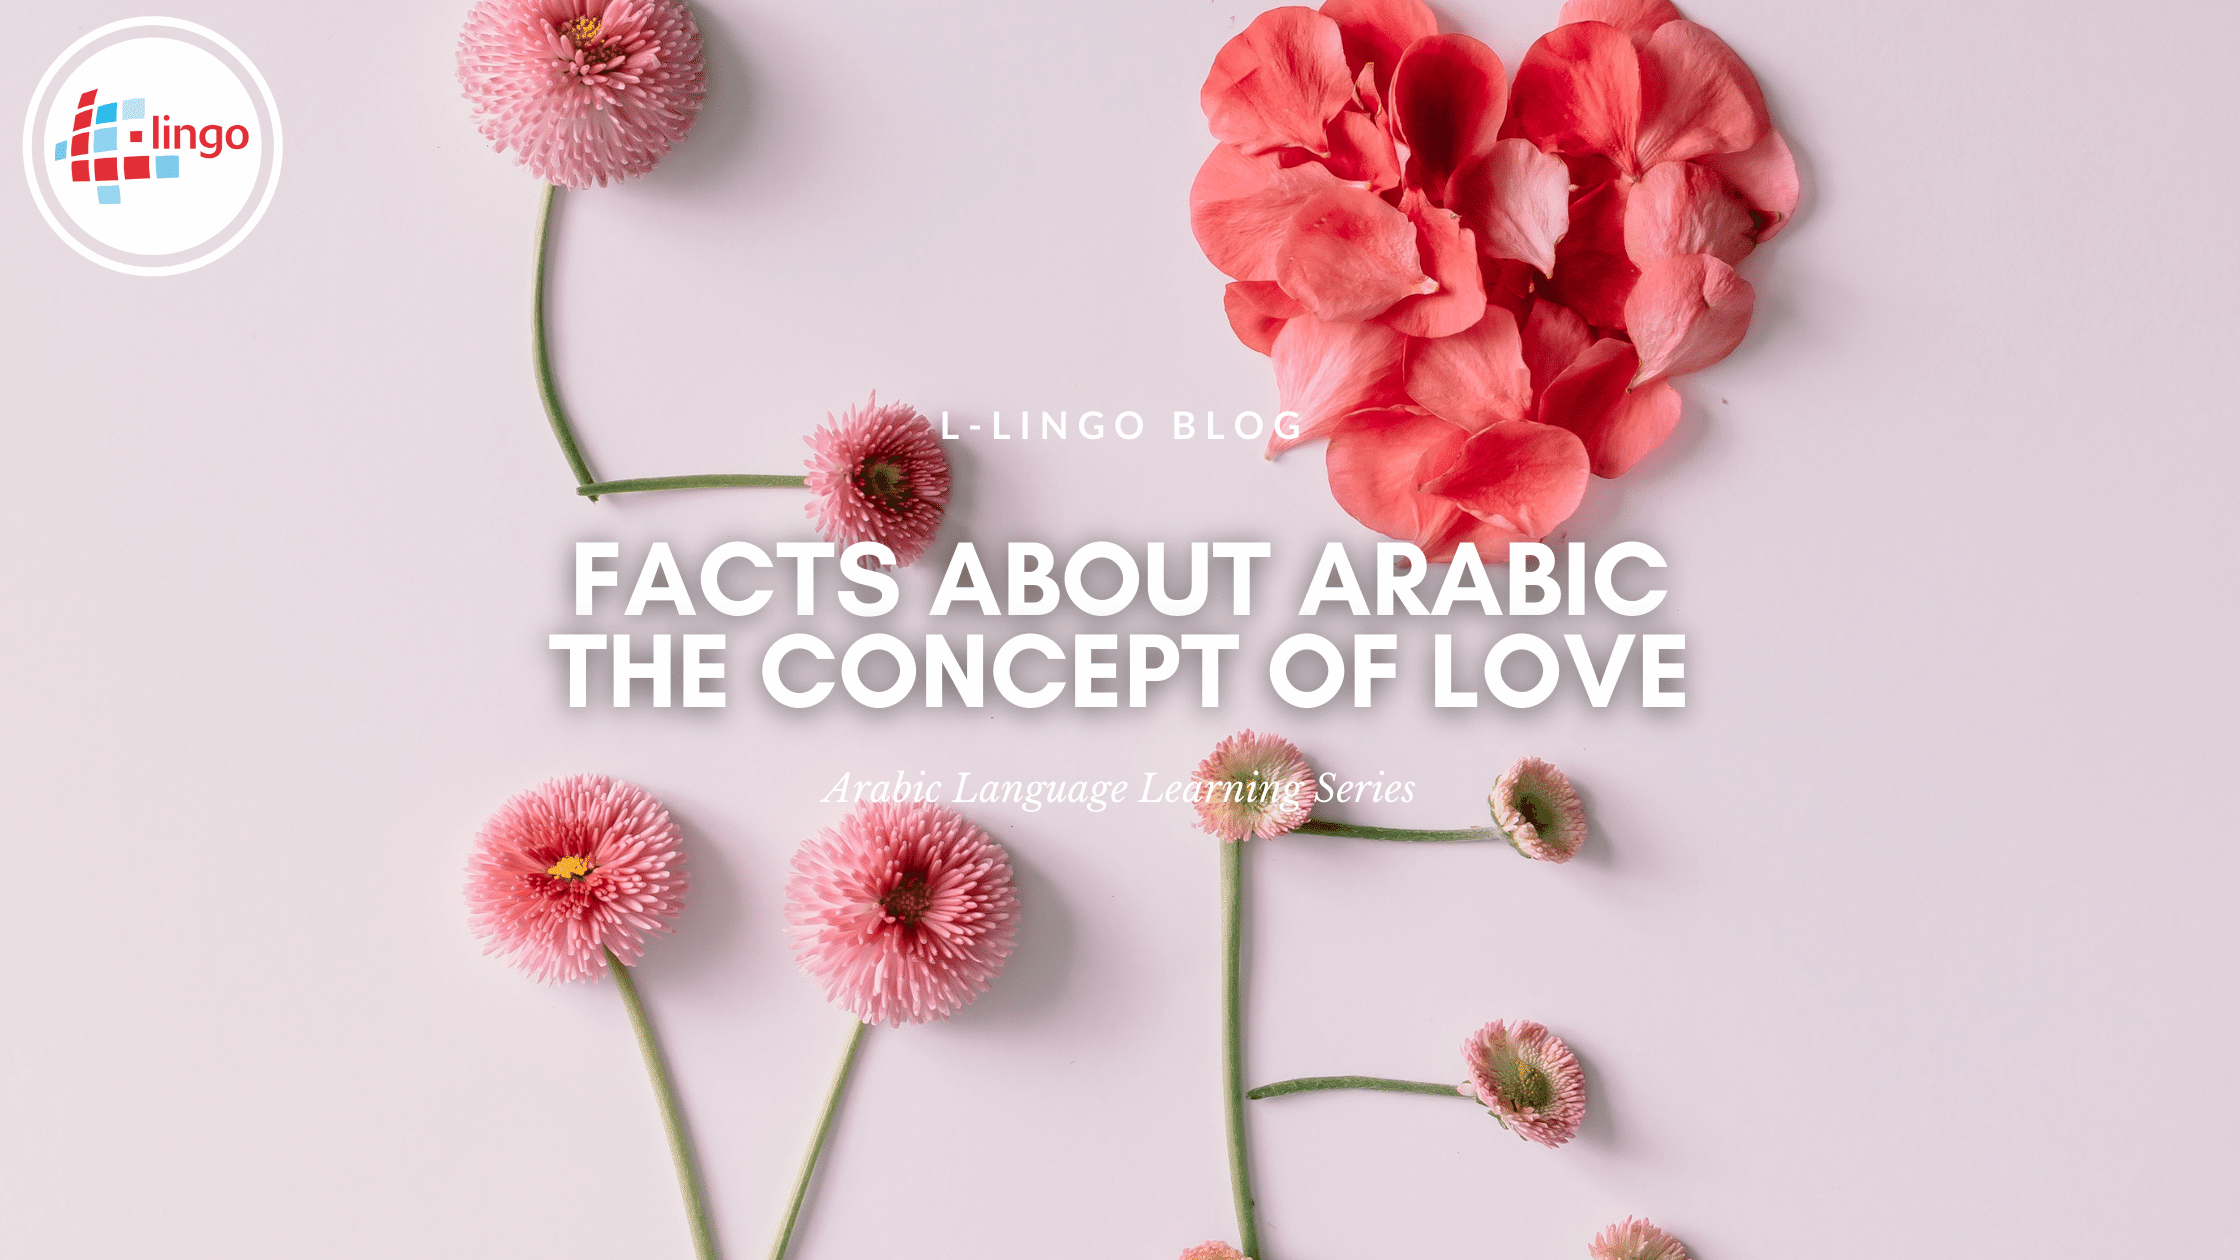 Facts About Arabic The Concept Of Love L-Lingo Blog